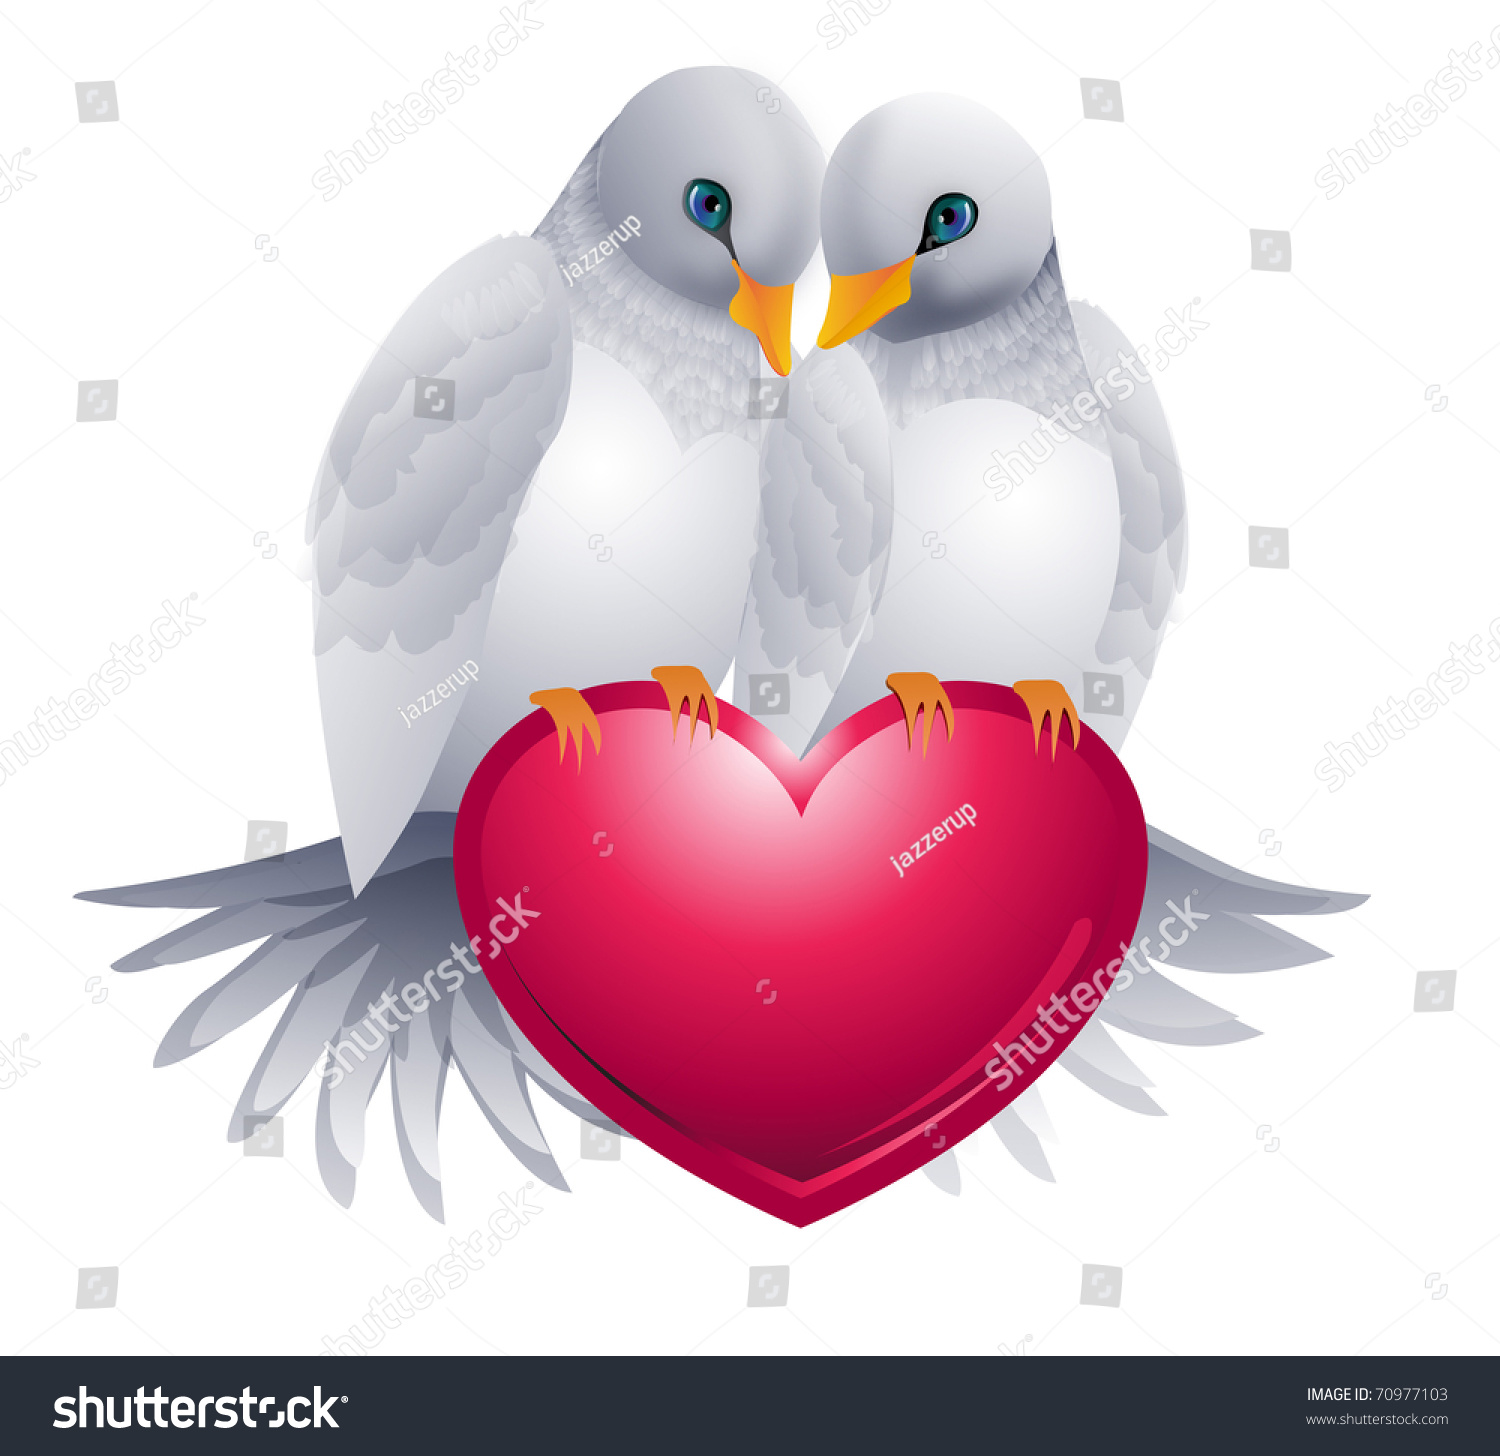 the two love birds essay how shakespeare portrays romeo and juliet act 2 scene 2 is a  divinity and birds as  wall and the views of the two families on the love between.